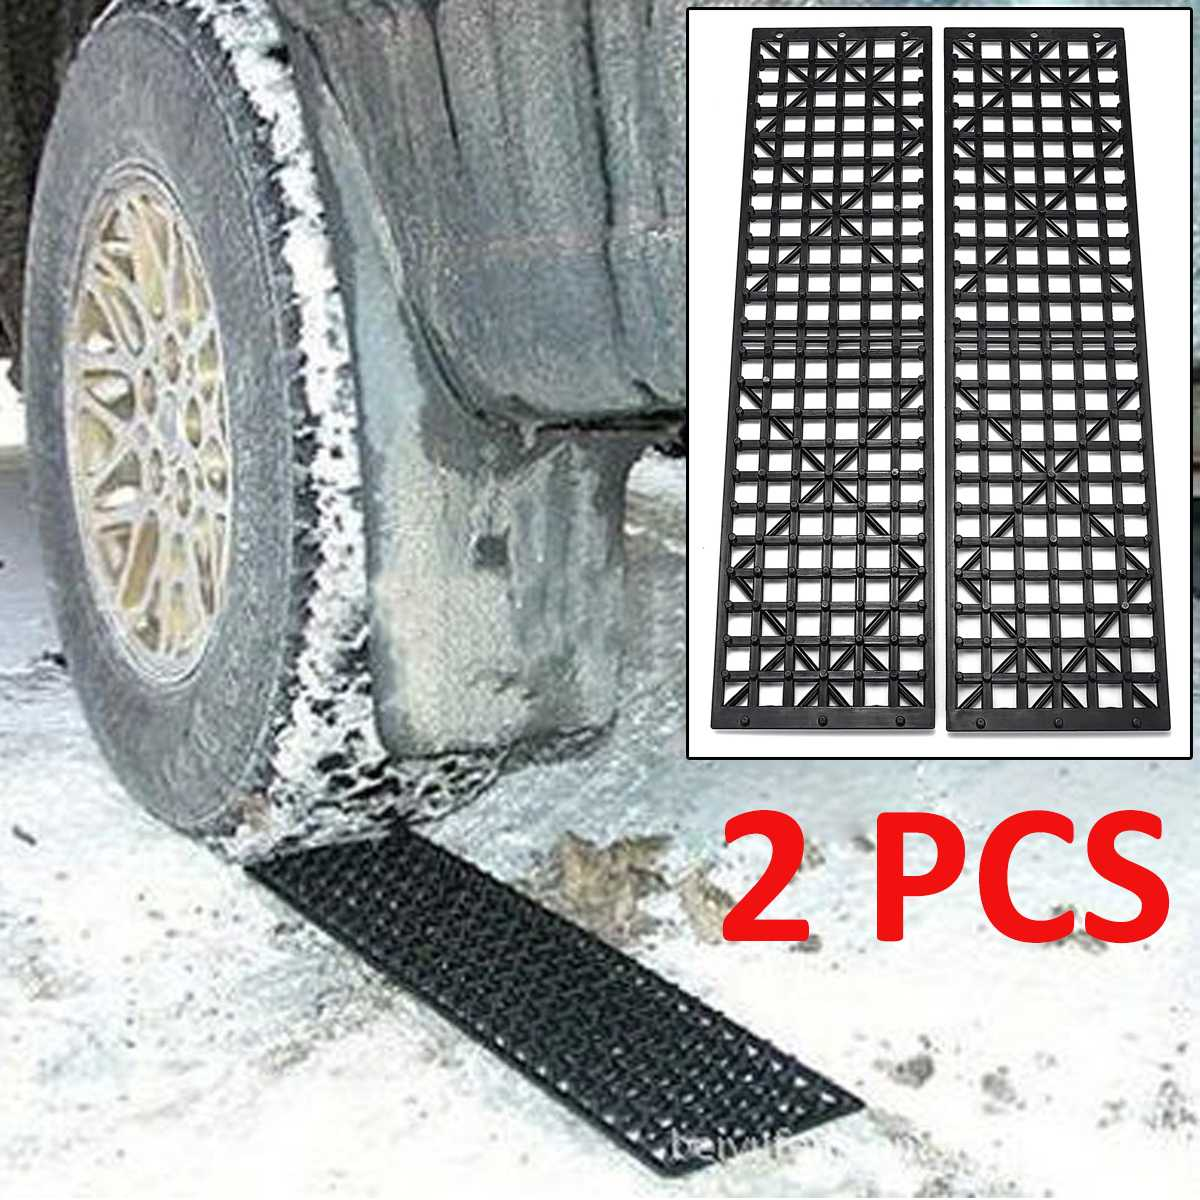 2Pcs Car Snow Ice Mud Road Clearer Auto Vehicle Truck Winter Snow Chains Tires Recovery Traction Mat Wheel Strap Tracks image